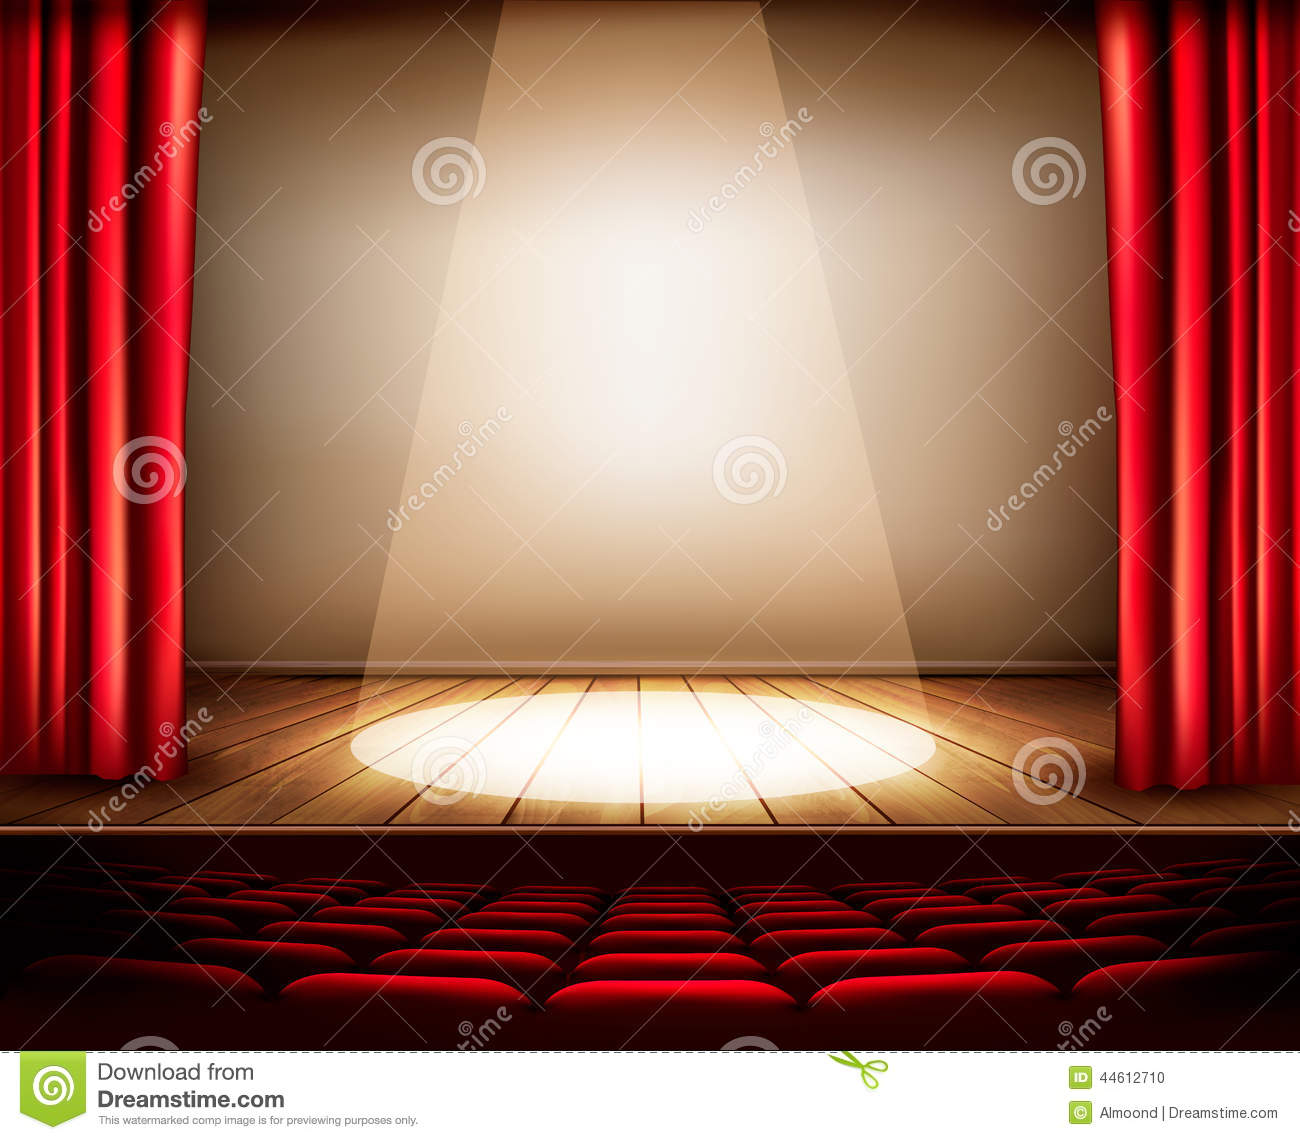 Stock Illustration Theater Stage Red Curtain Seats Spotlight Vector Image44612710 on More 5159